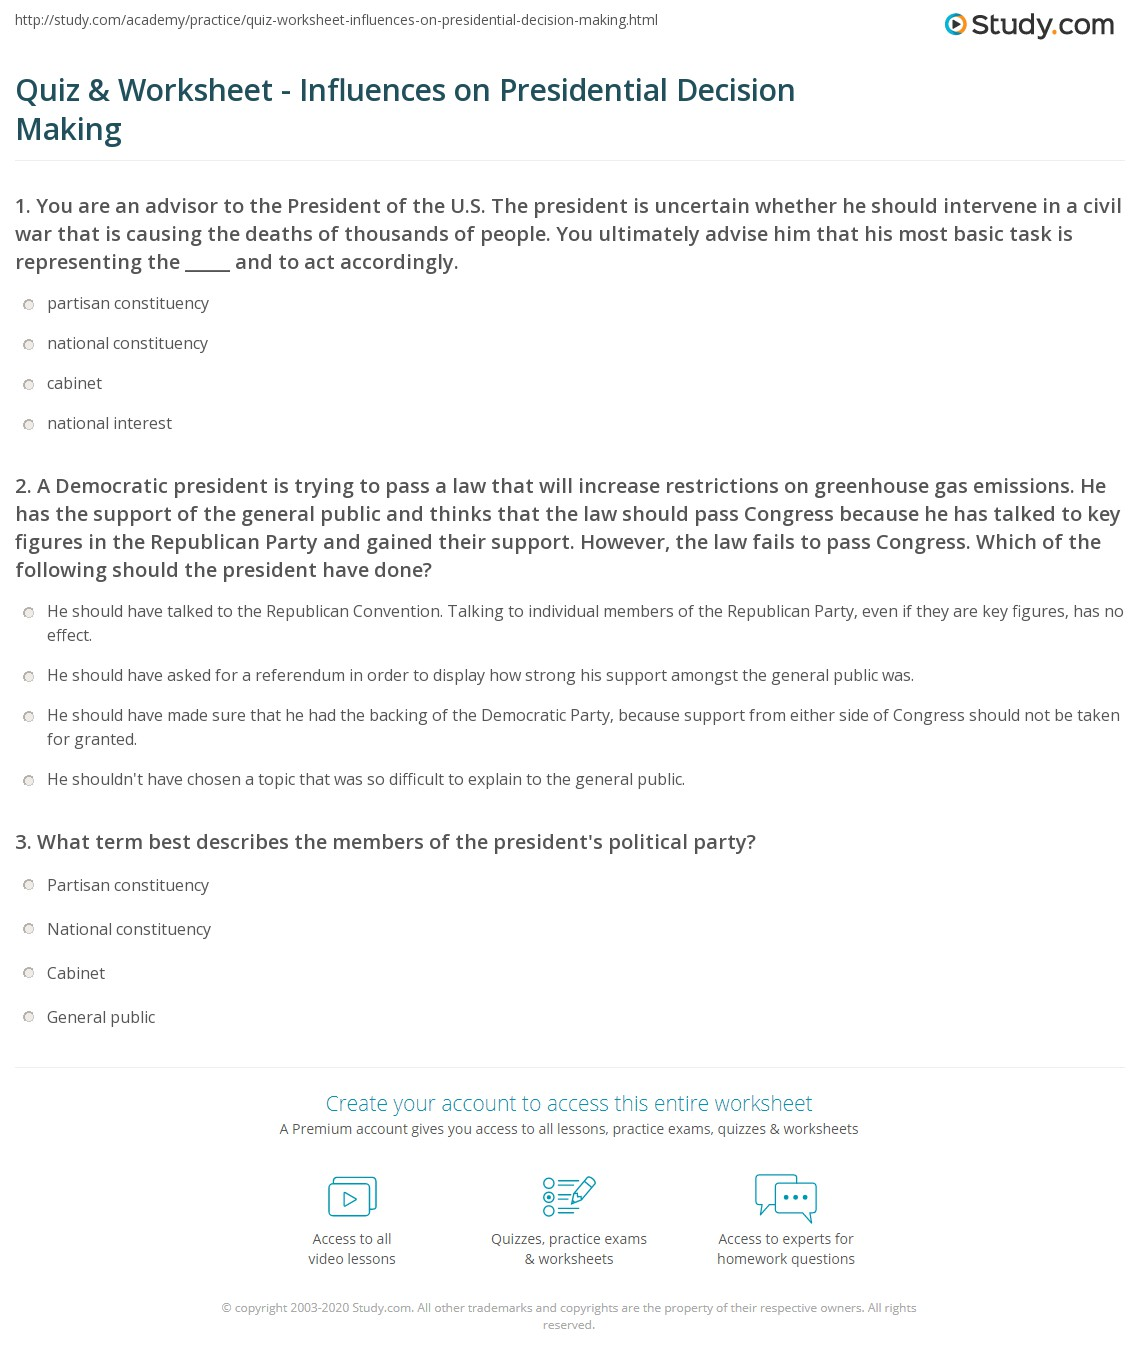 worksheet President Worksheets quiz worksheet influences on presidential decision making a democratic president is trying to pass law that will increase restrictions greenhouse gas emissions he has the support of